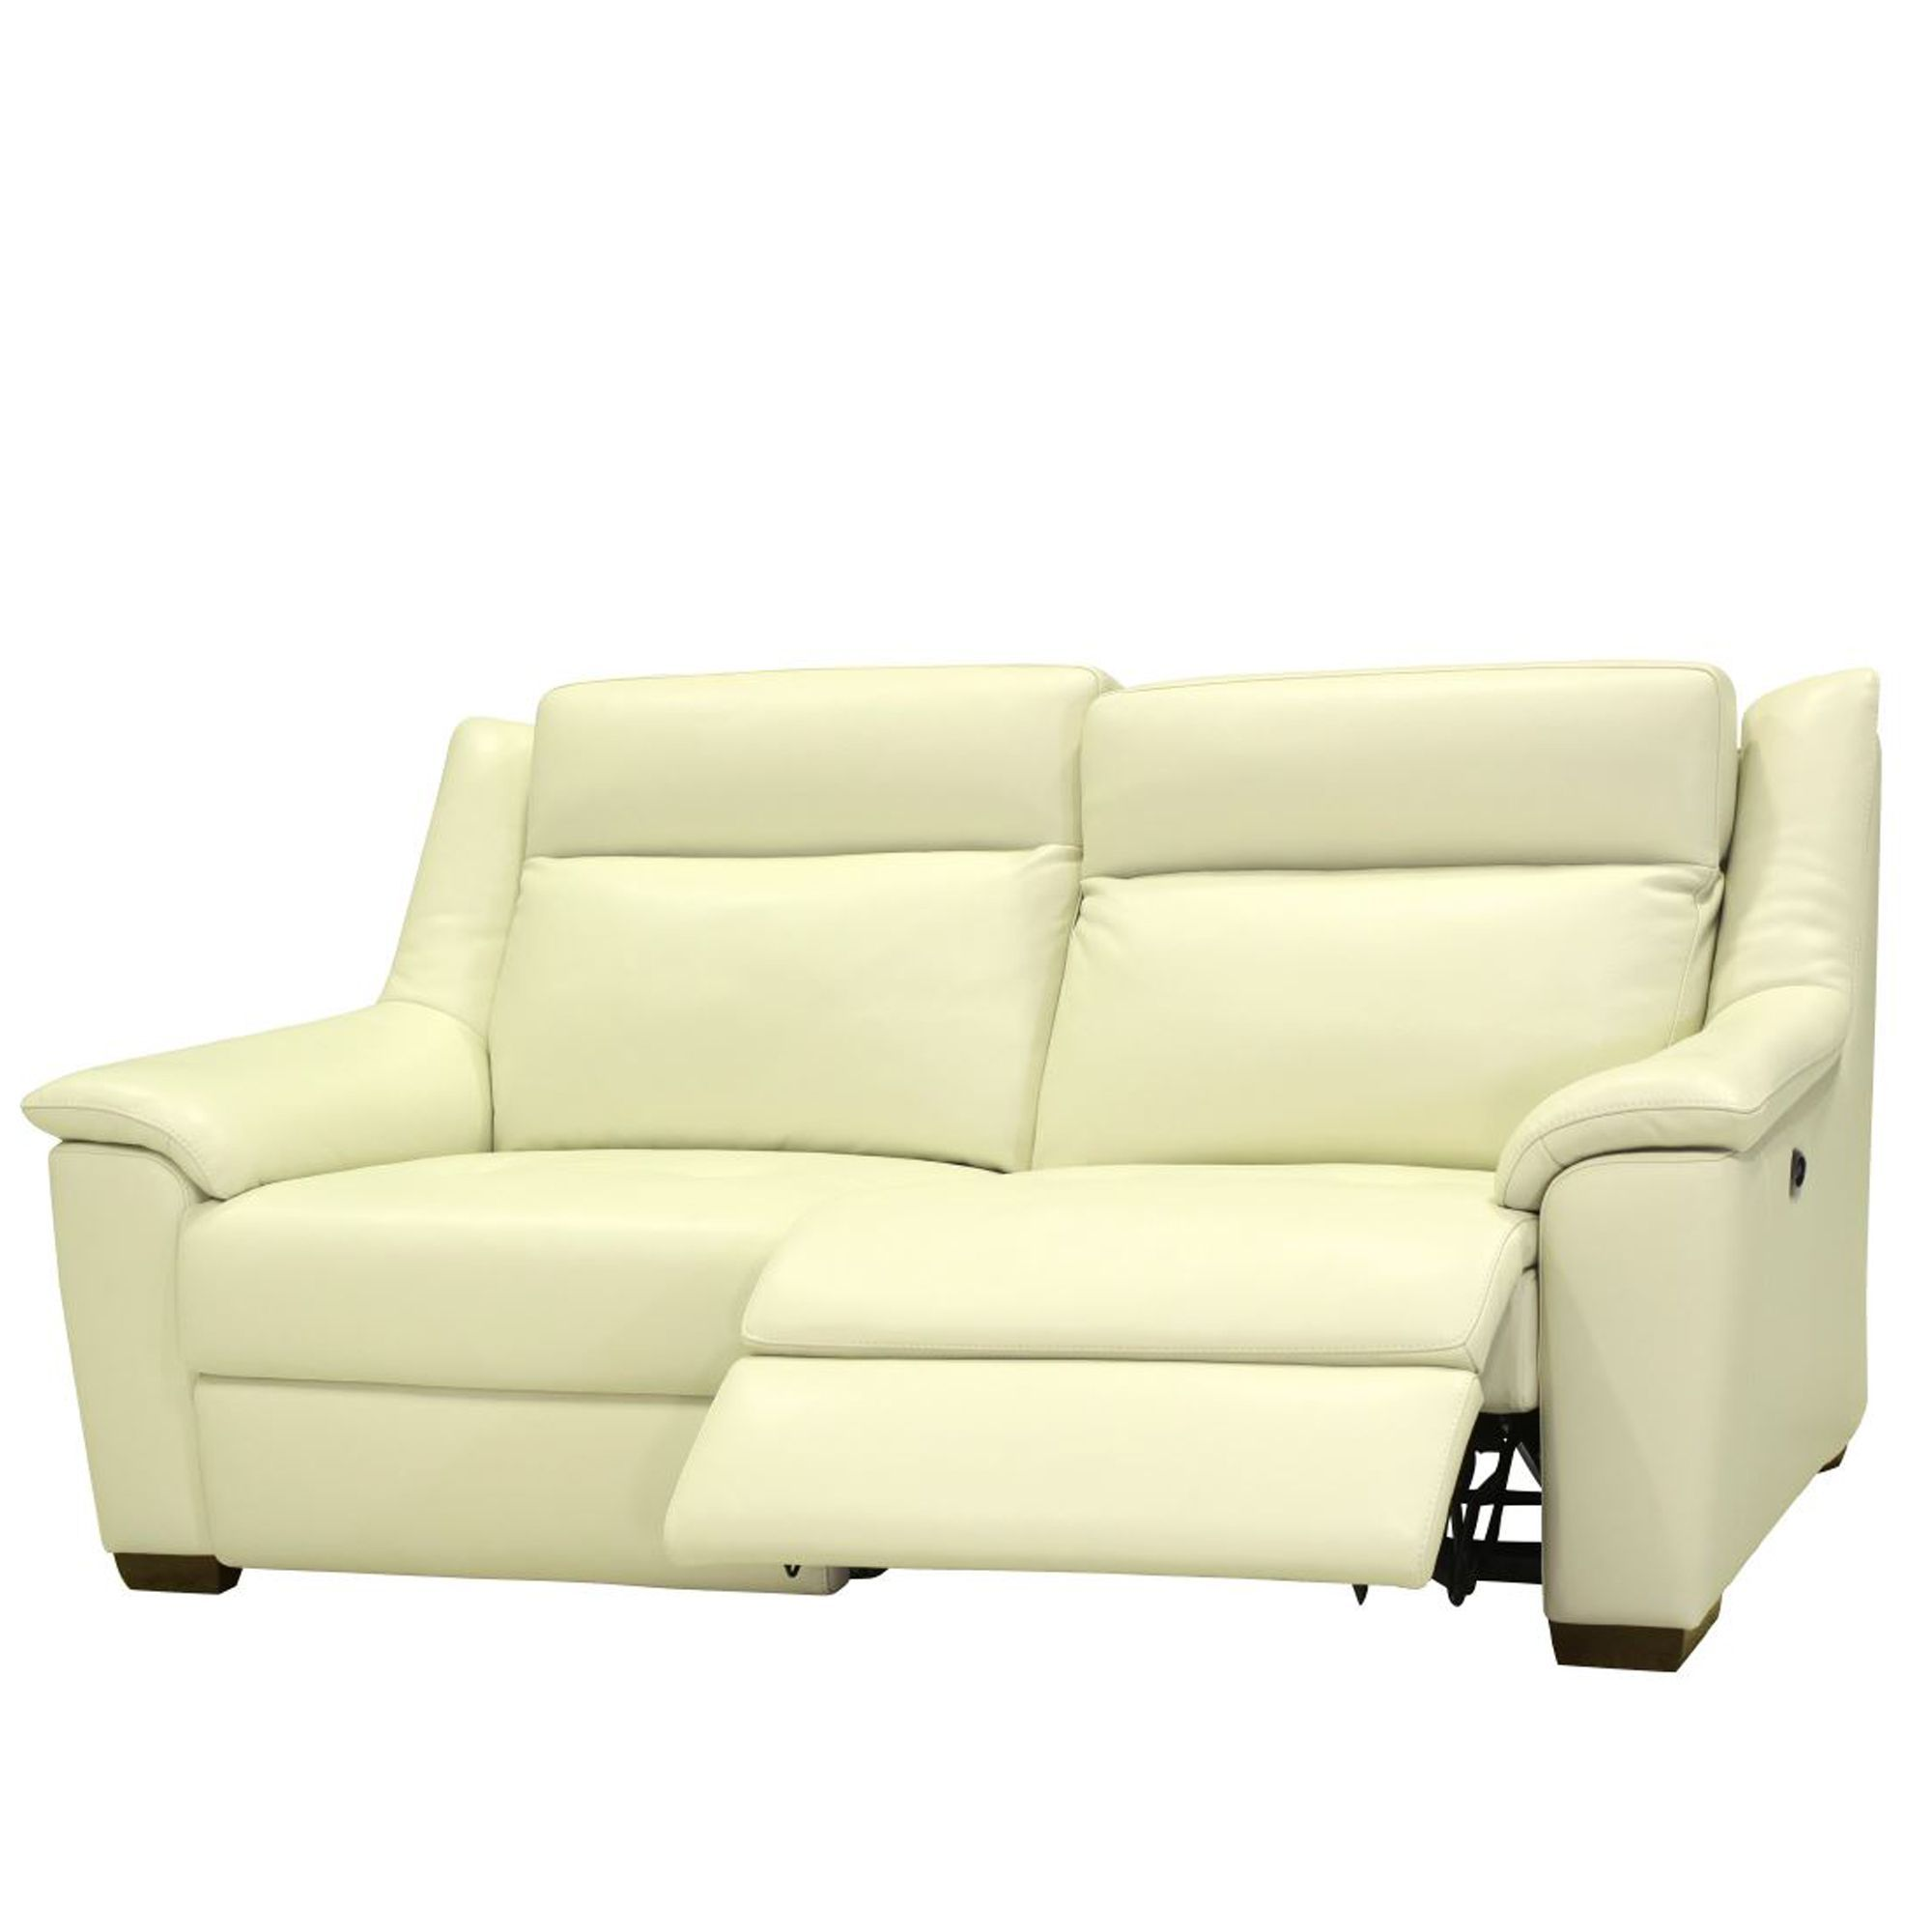 10 Best Collection Of Off White Leather Sofas: Cookes Collection Darwin 3 Seater Manual Recliner Sofa